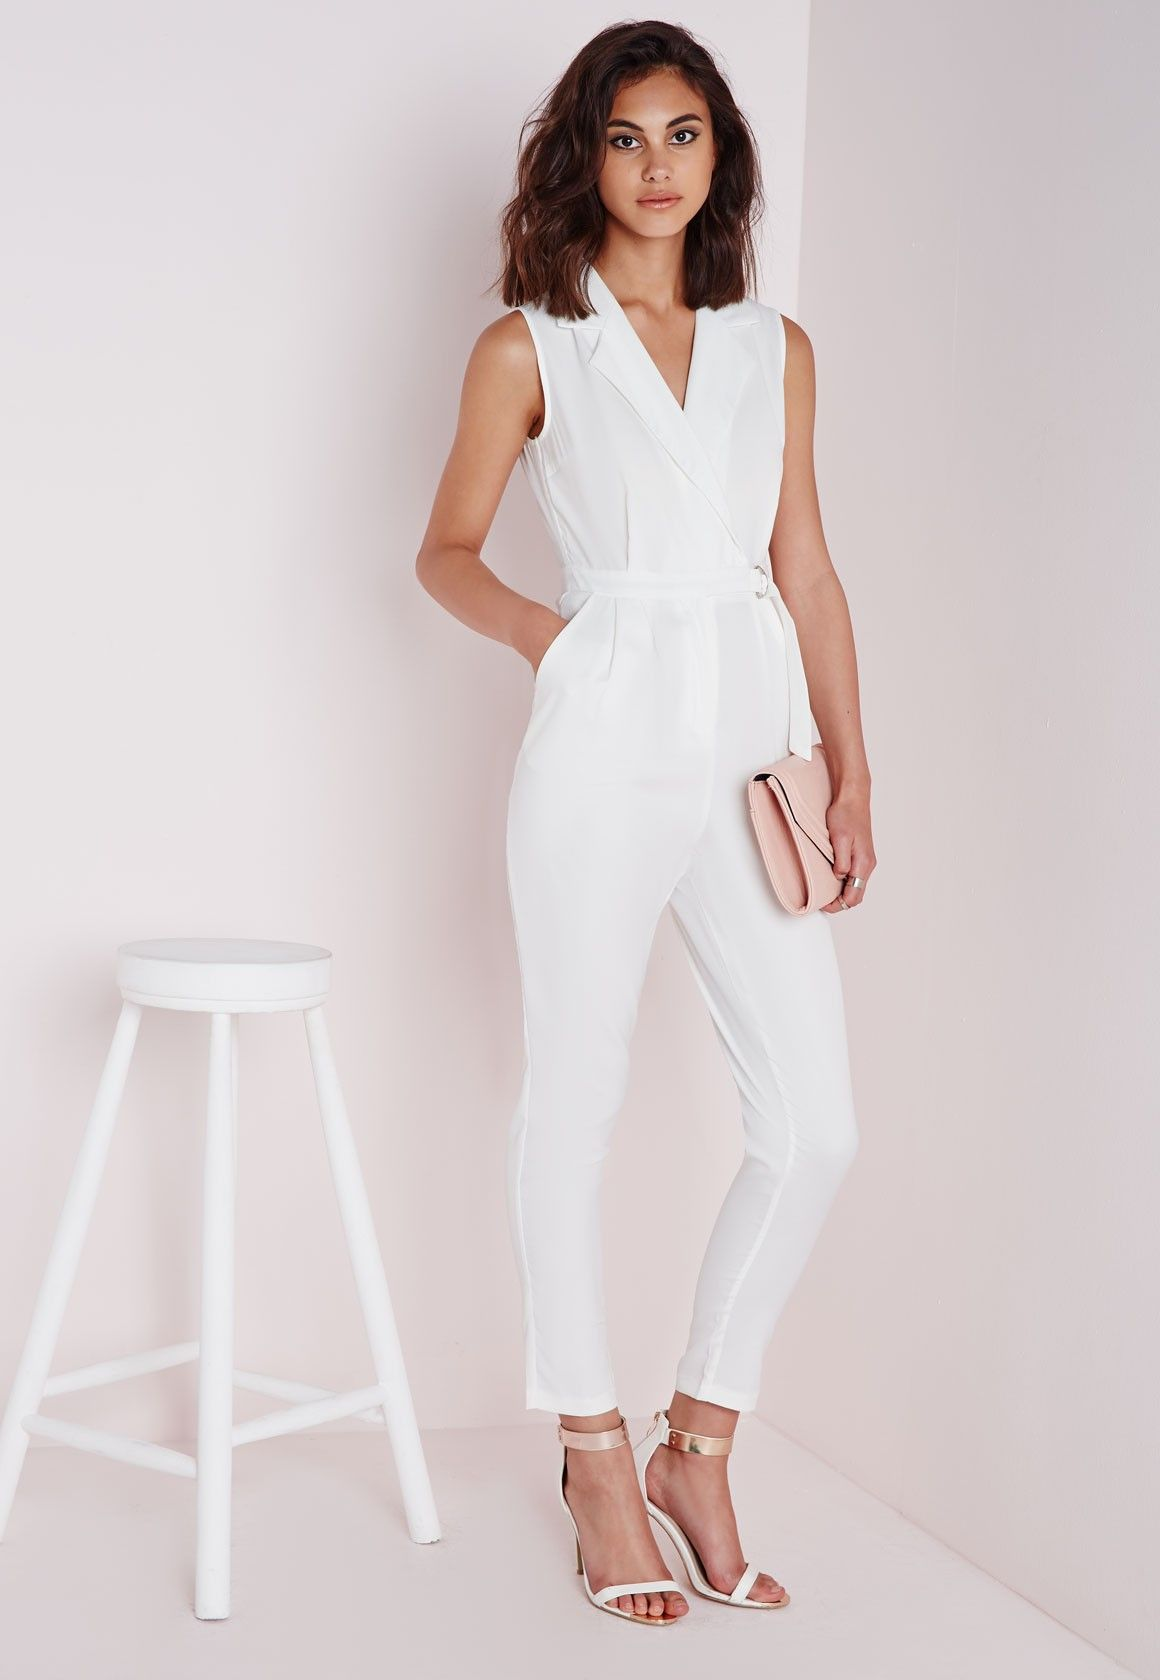 missguided combinaison blanche sans manches avec ceinture jumpsuit robe vetements et tenue. Black Bedroom Furniture Sets. Home Design Ideas